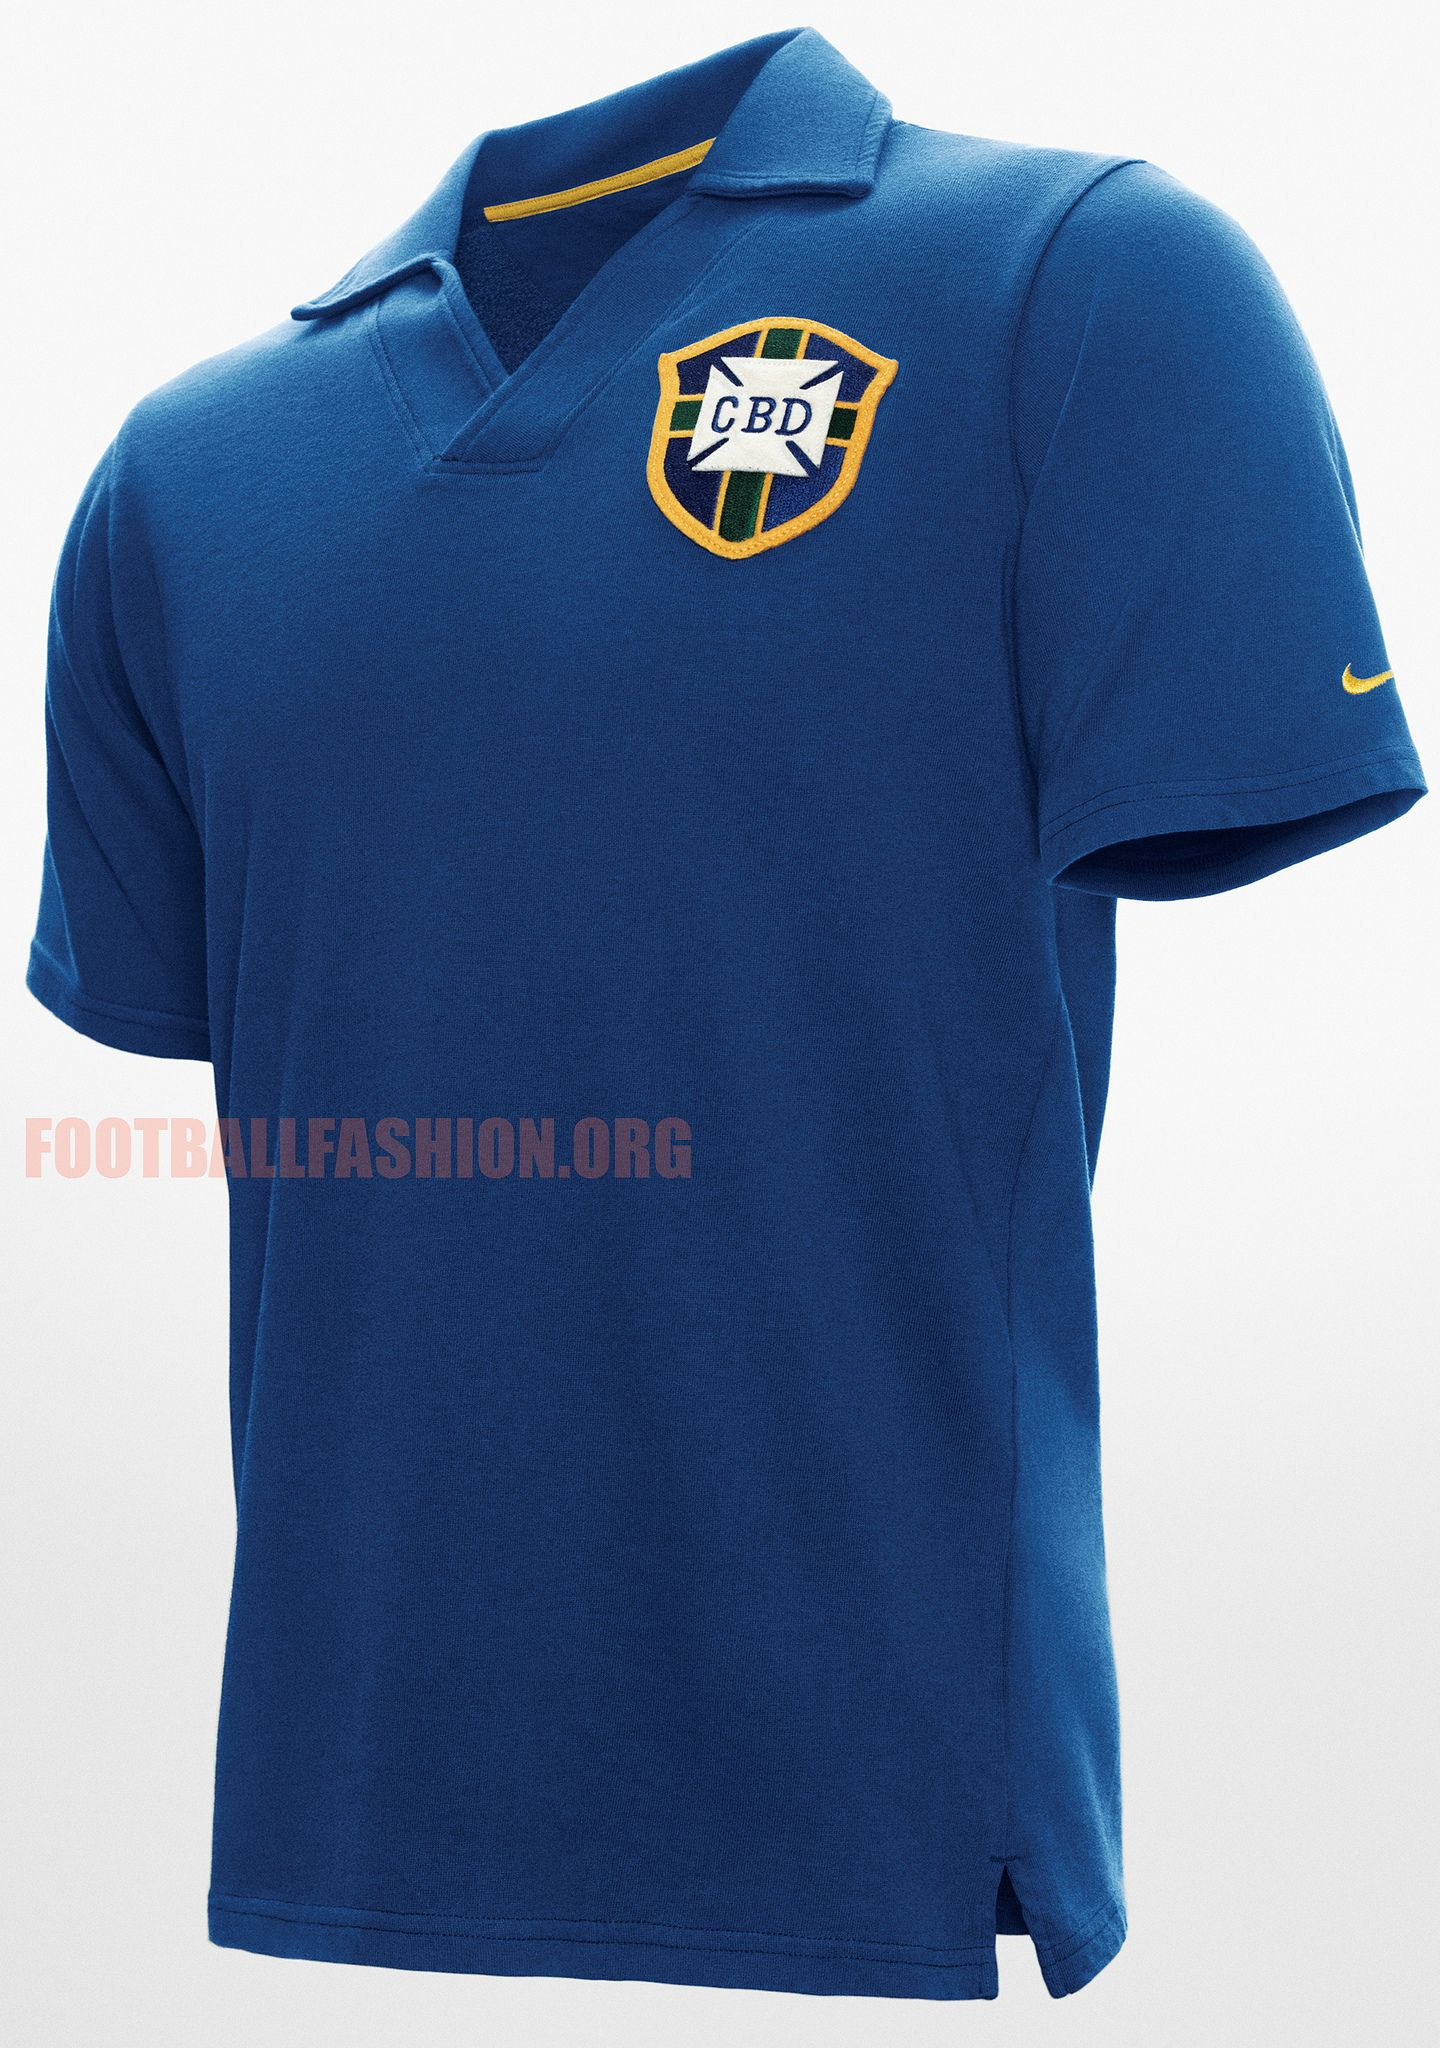 24f0e2f9149 Brazil Nike 1958 World Cup Commemorative Jersey